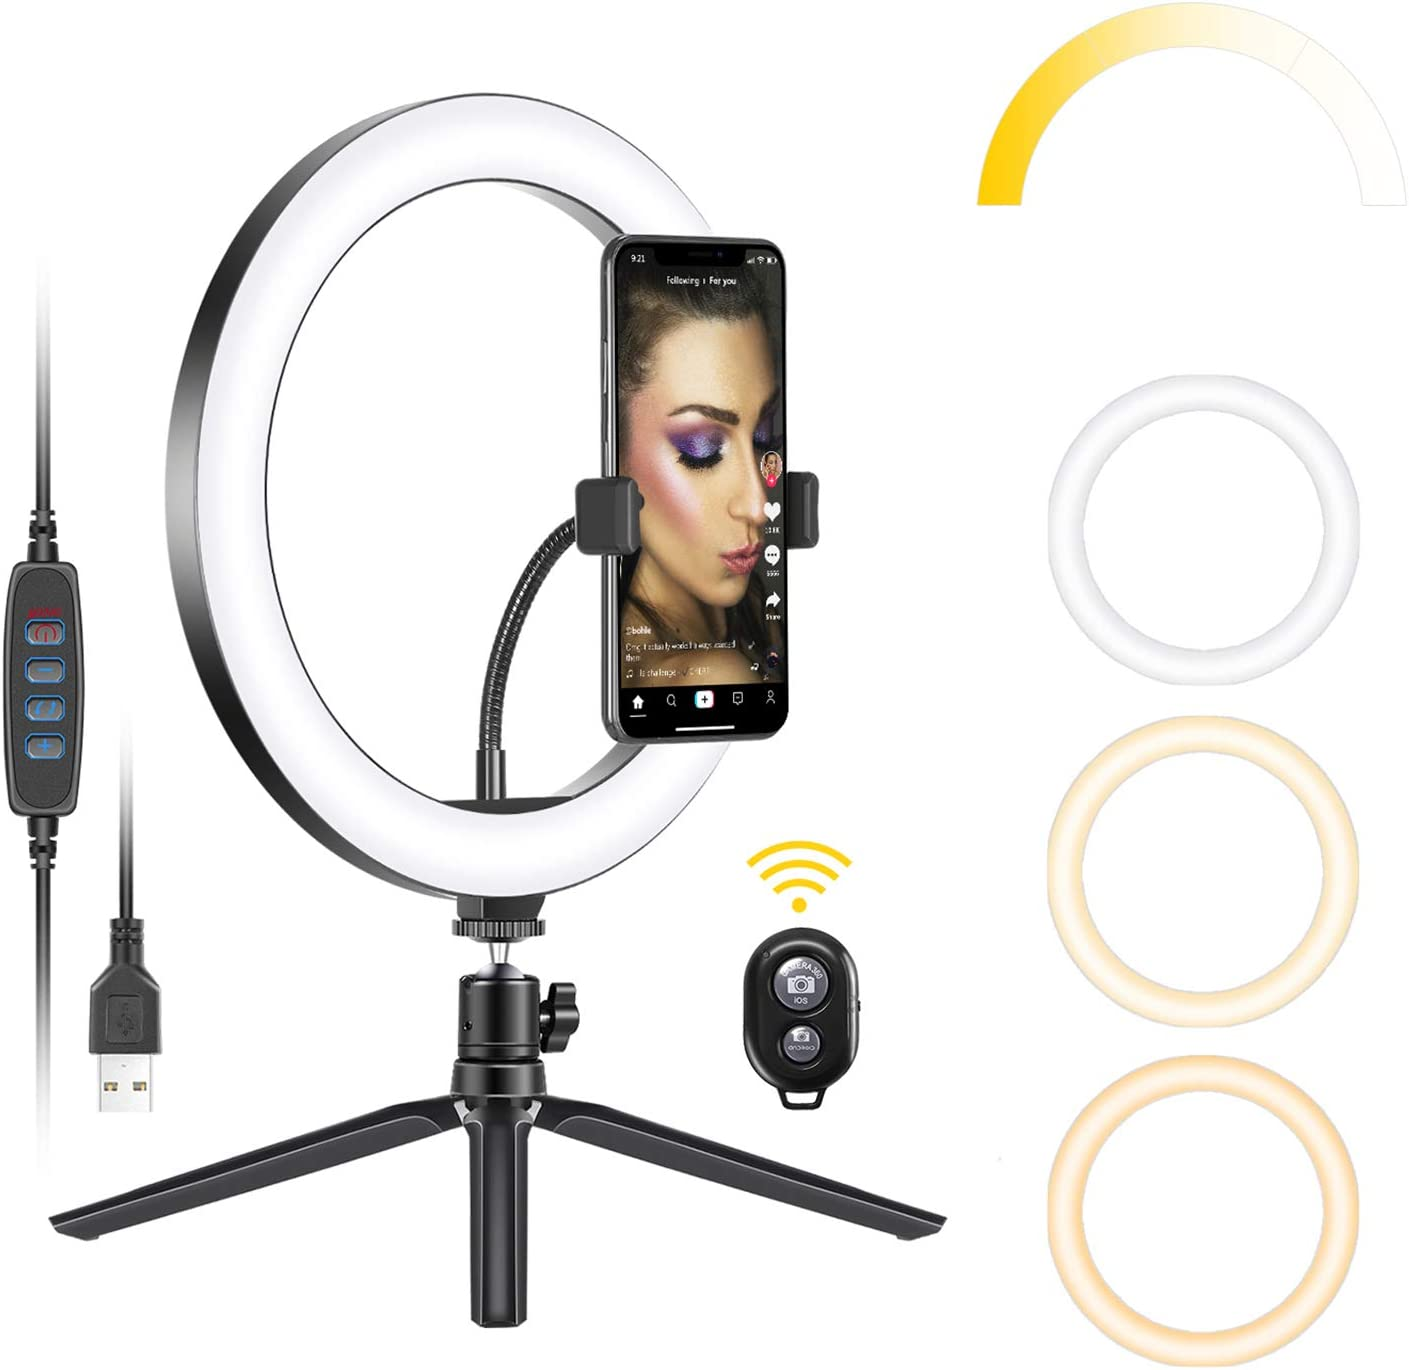 XYSQWZ Led Ring Light with Stand 10 Inch LED Ring Light with Stand Streamer and Hose Can Be Used for YouTube Video Shooting Makeup Smartphone and Camera